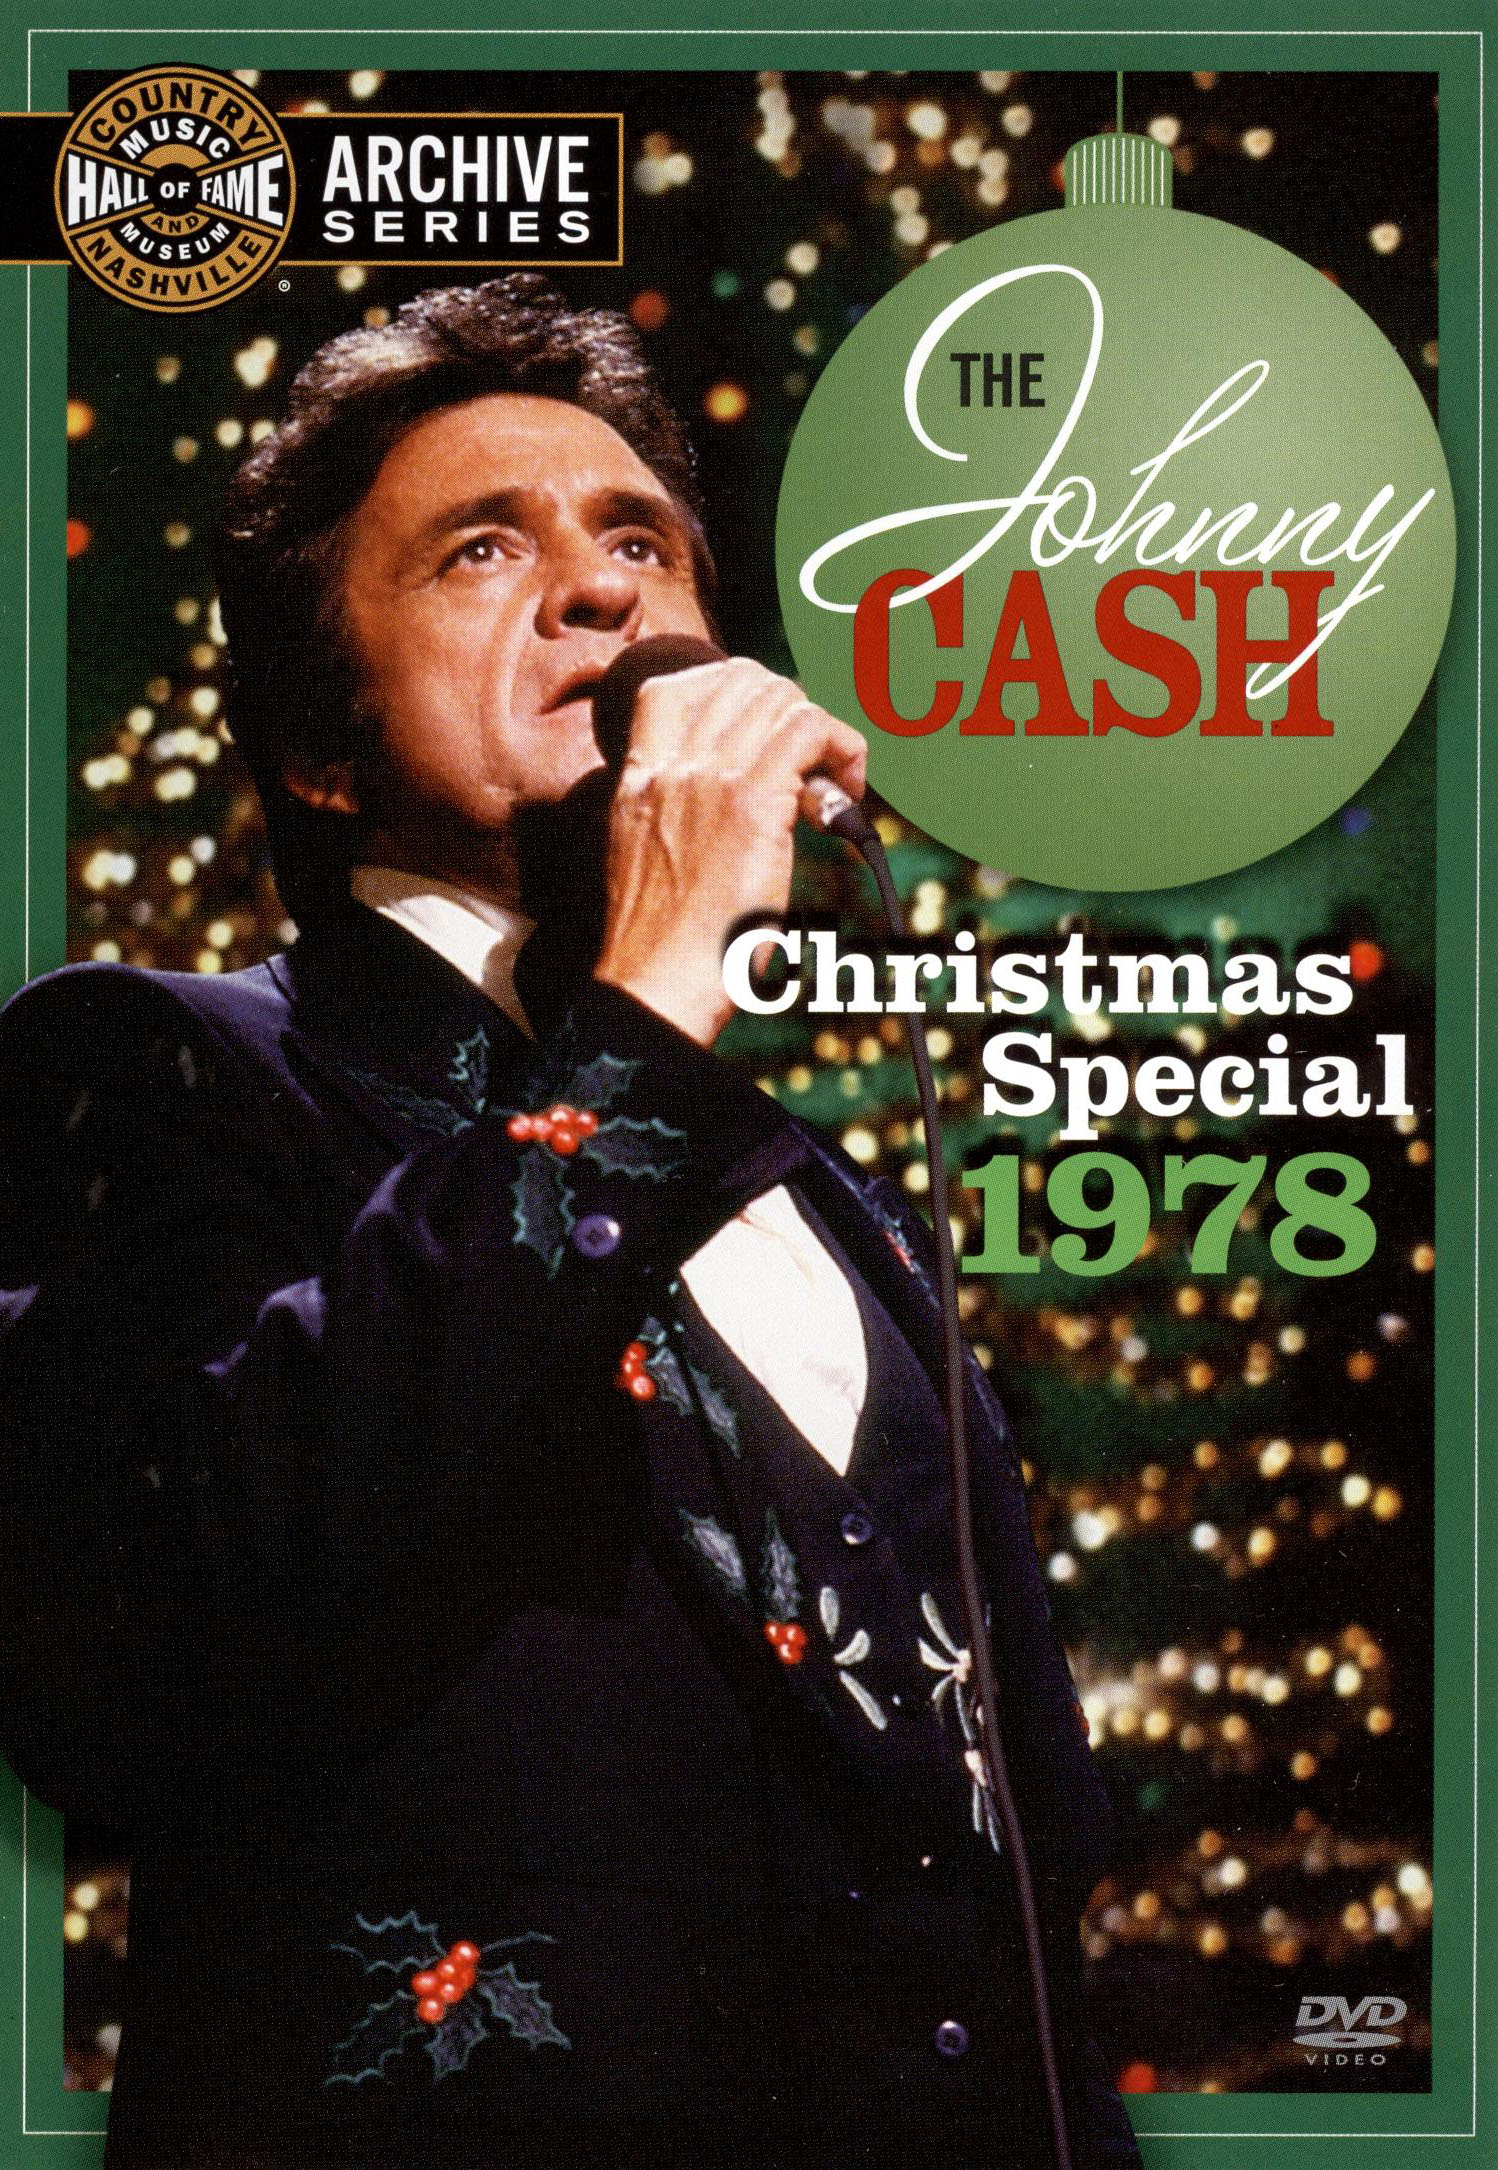 Johnny Cash Christmas Special 1978 (1978) - Walter C. Miller ...